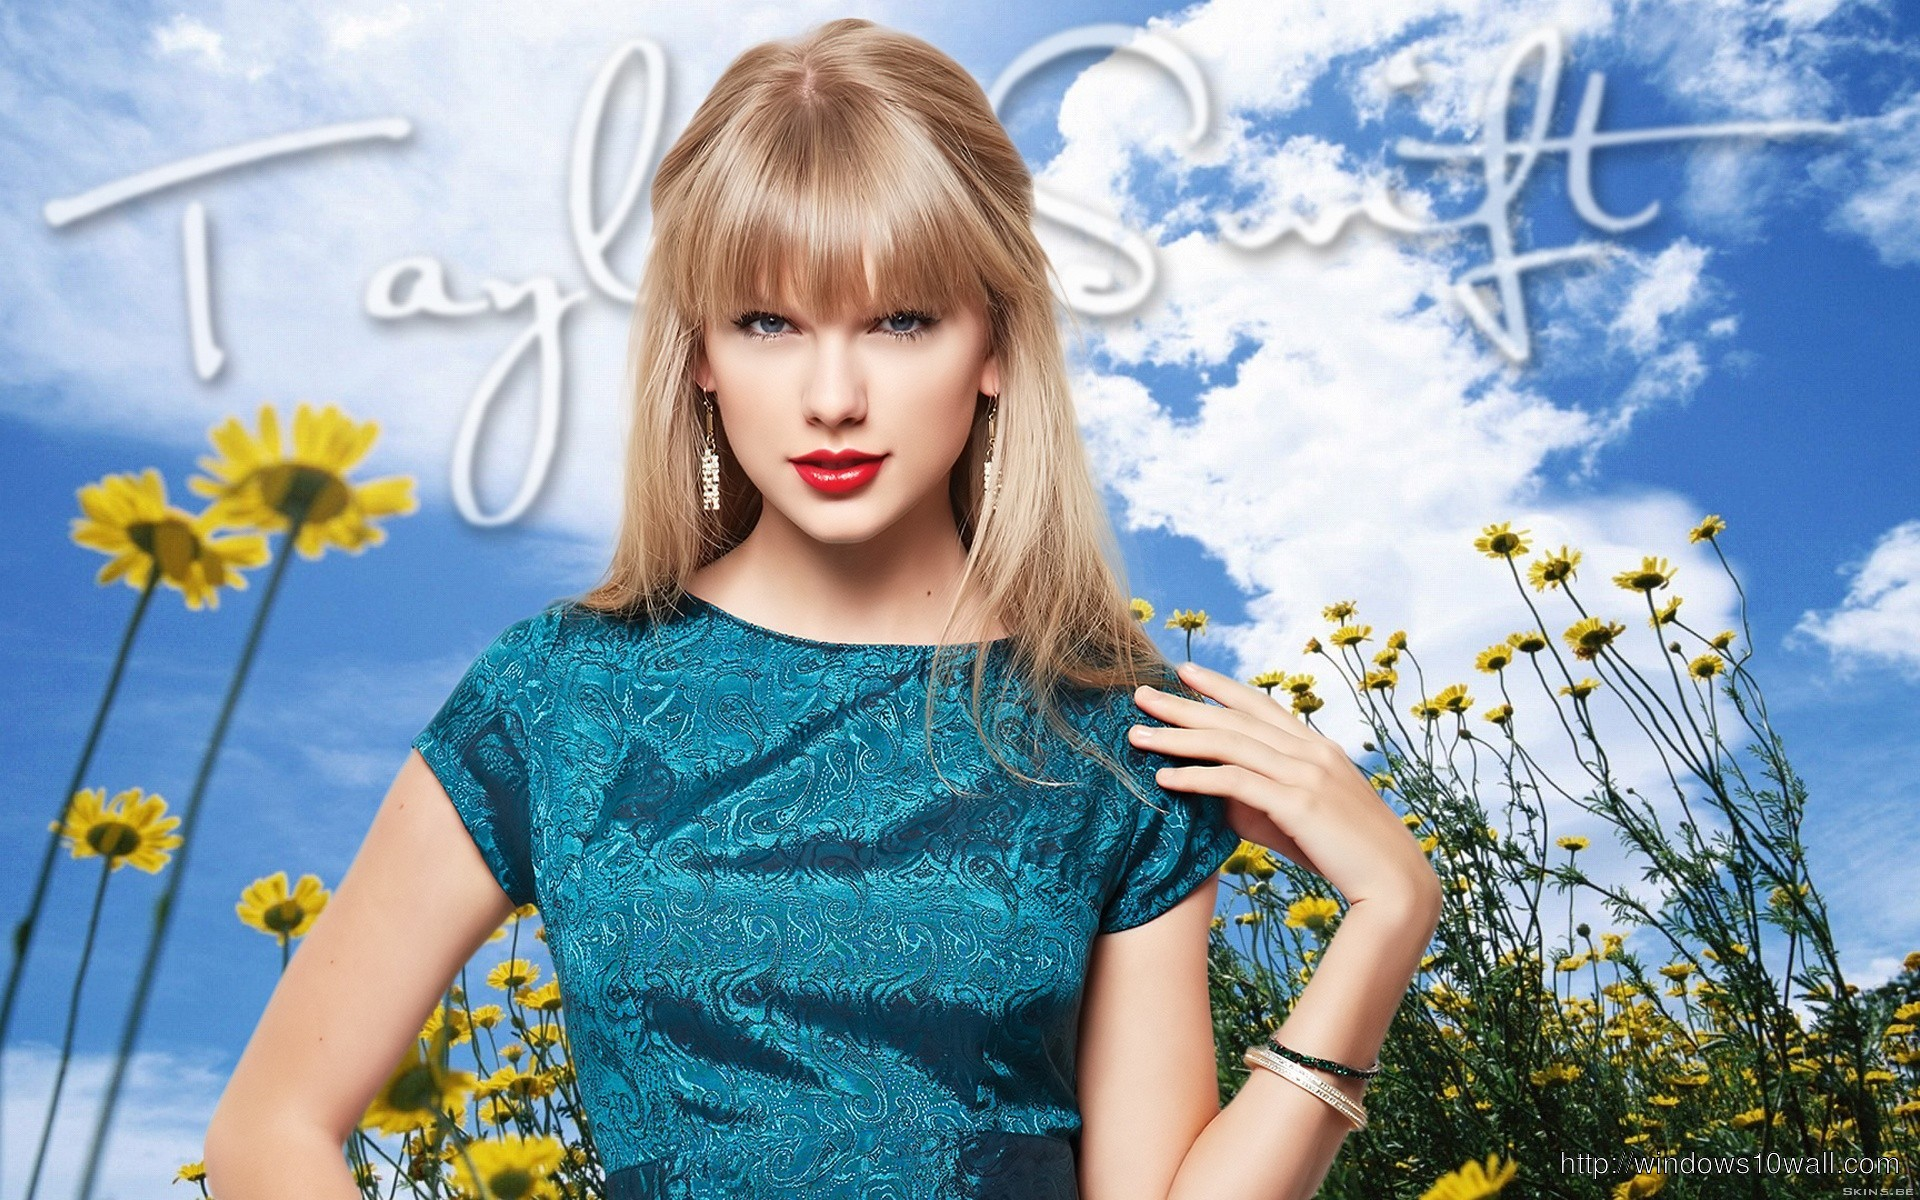 Taylor Swift Computer Wallpaper Free